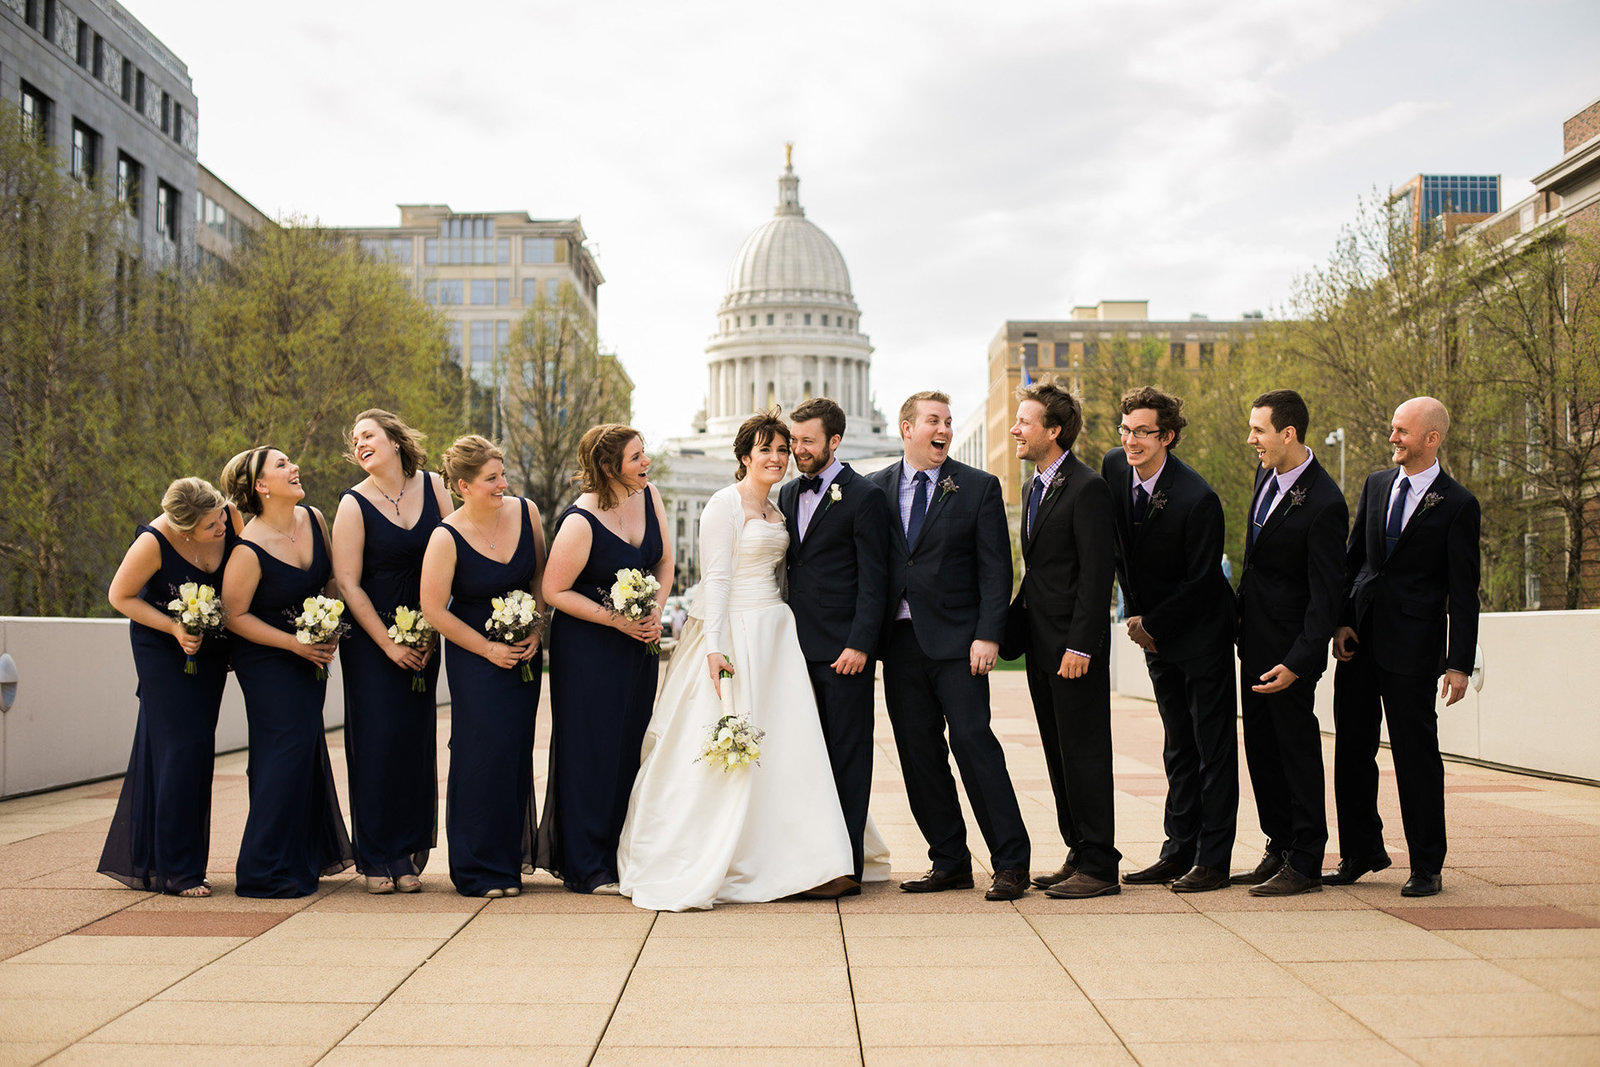 Wedding party photos at the Monona Terrace